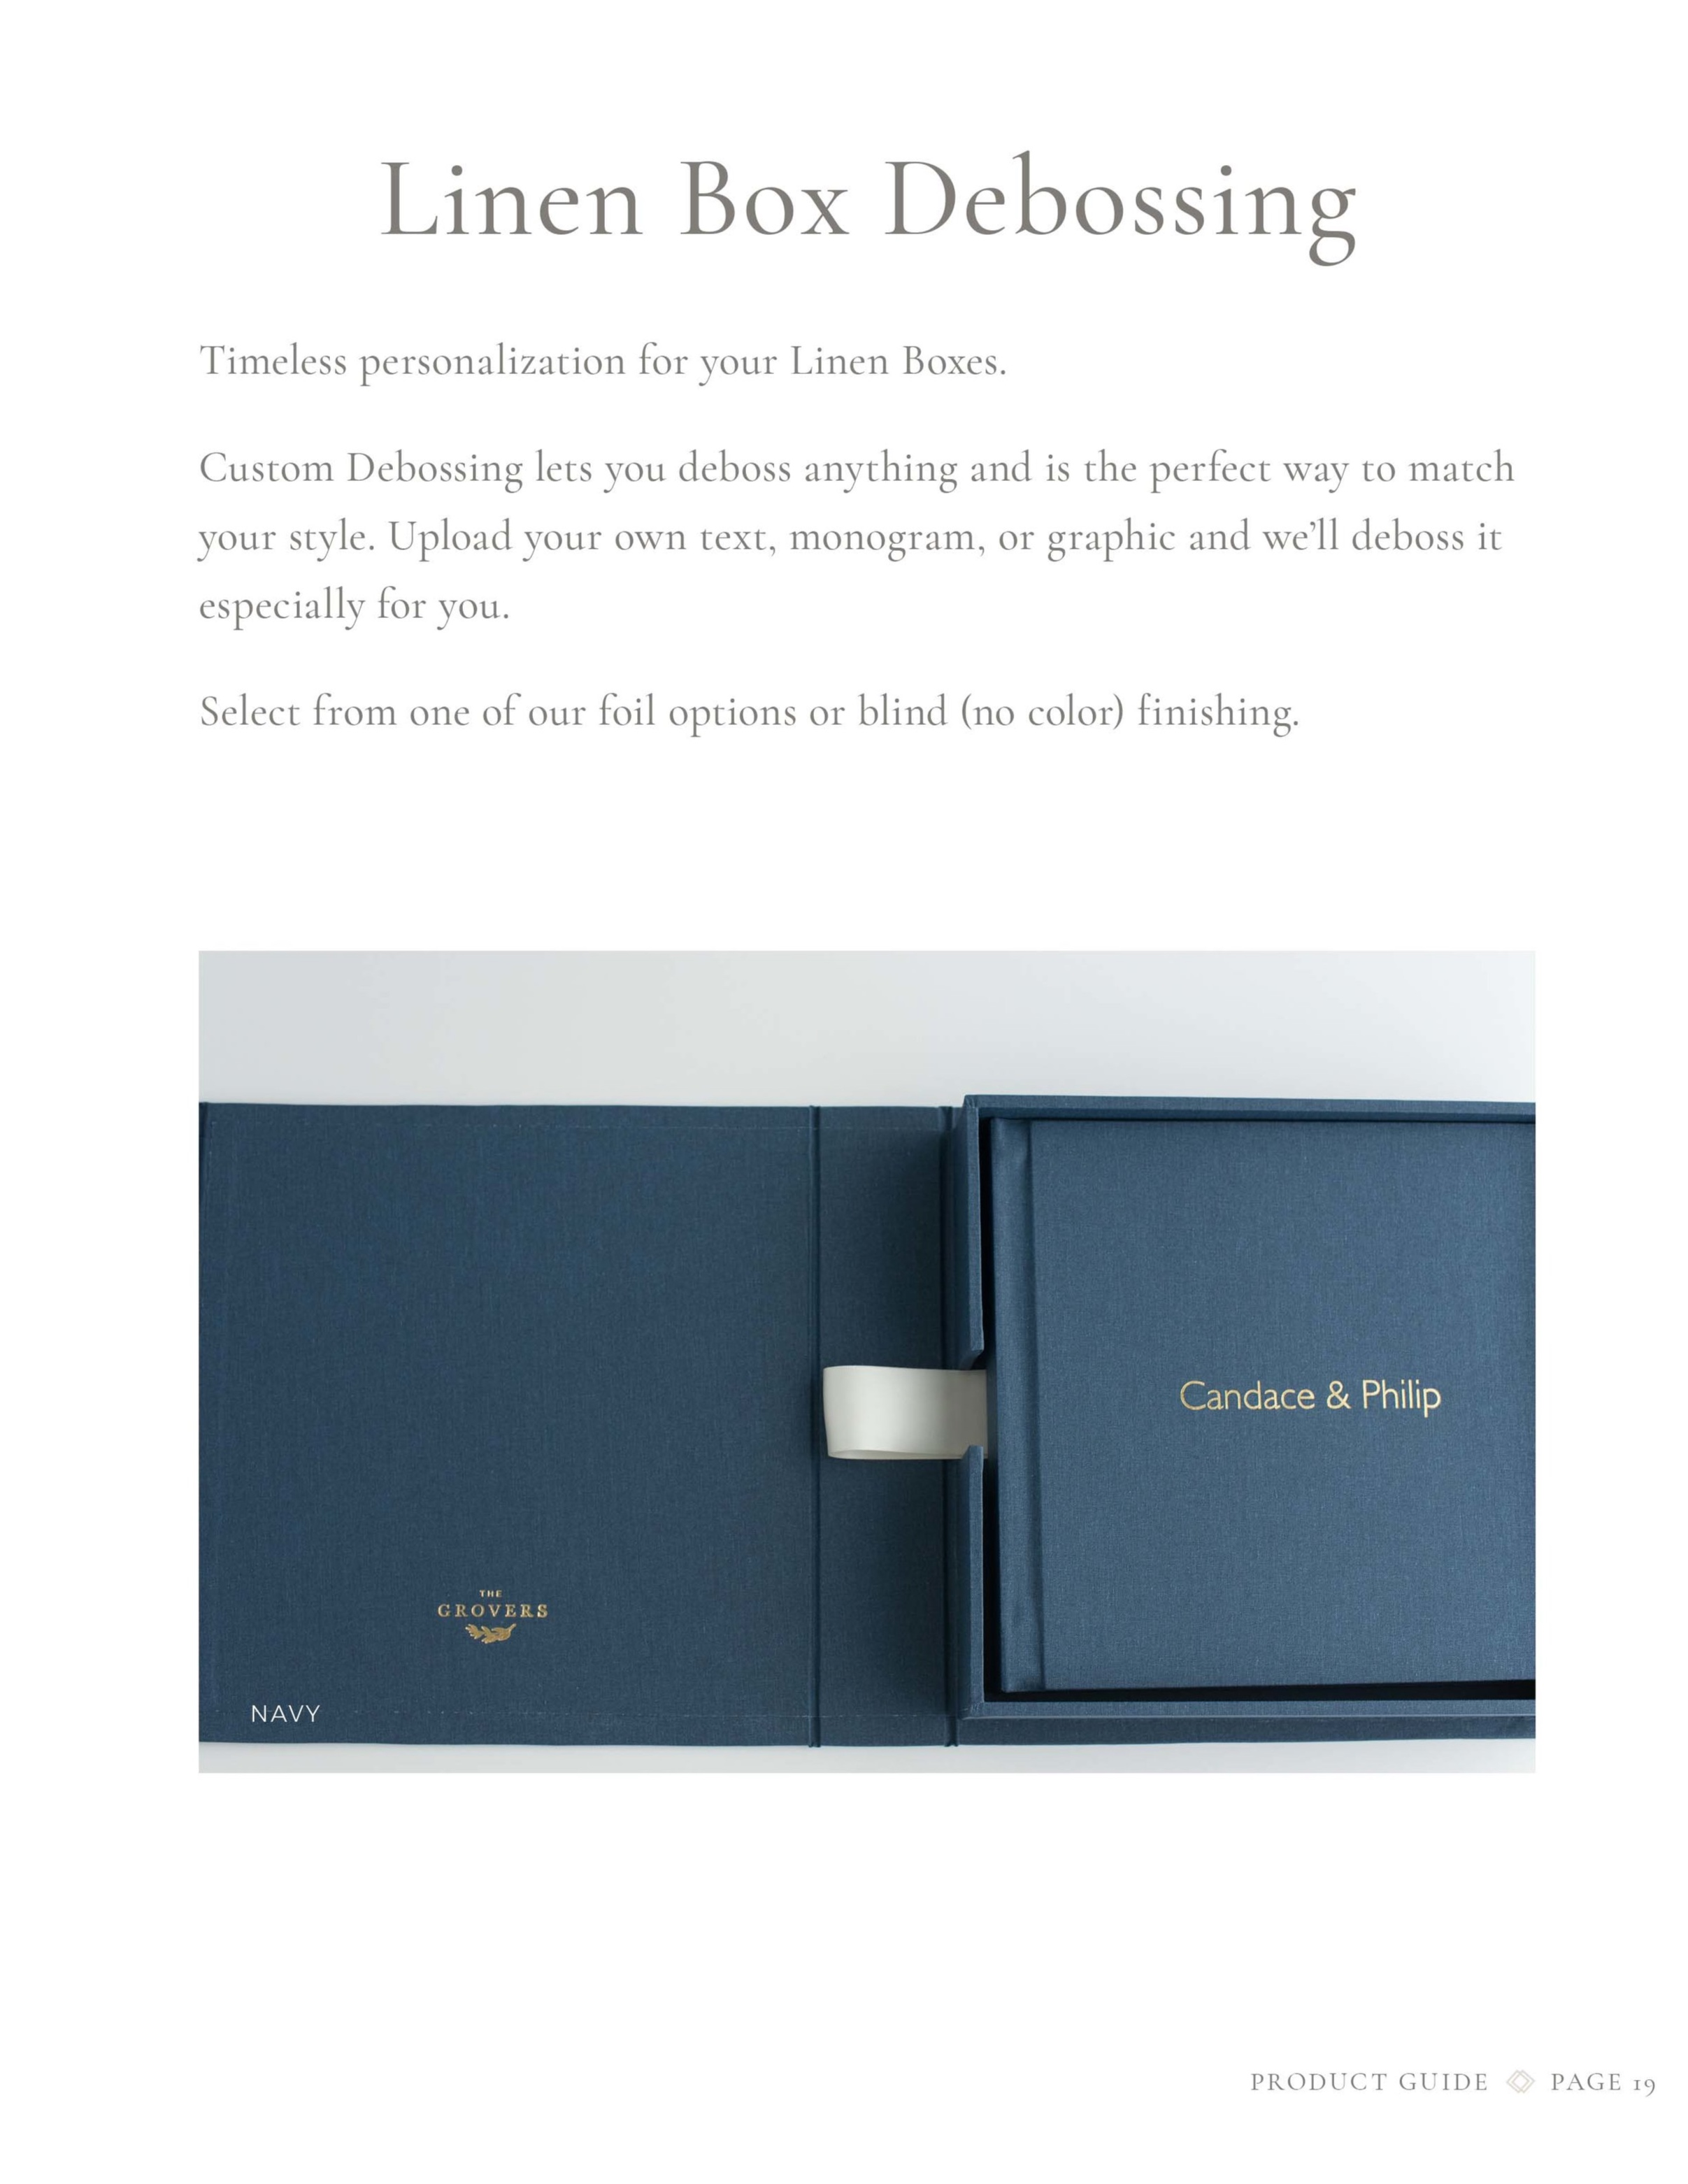 Product Guide-Albums & Proof Boxes -10b.jpg